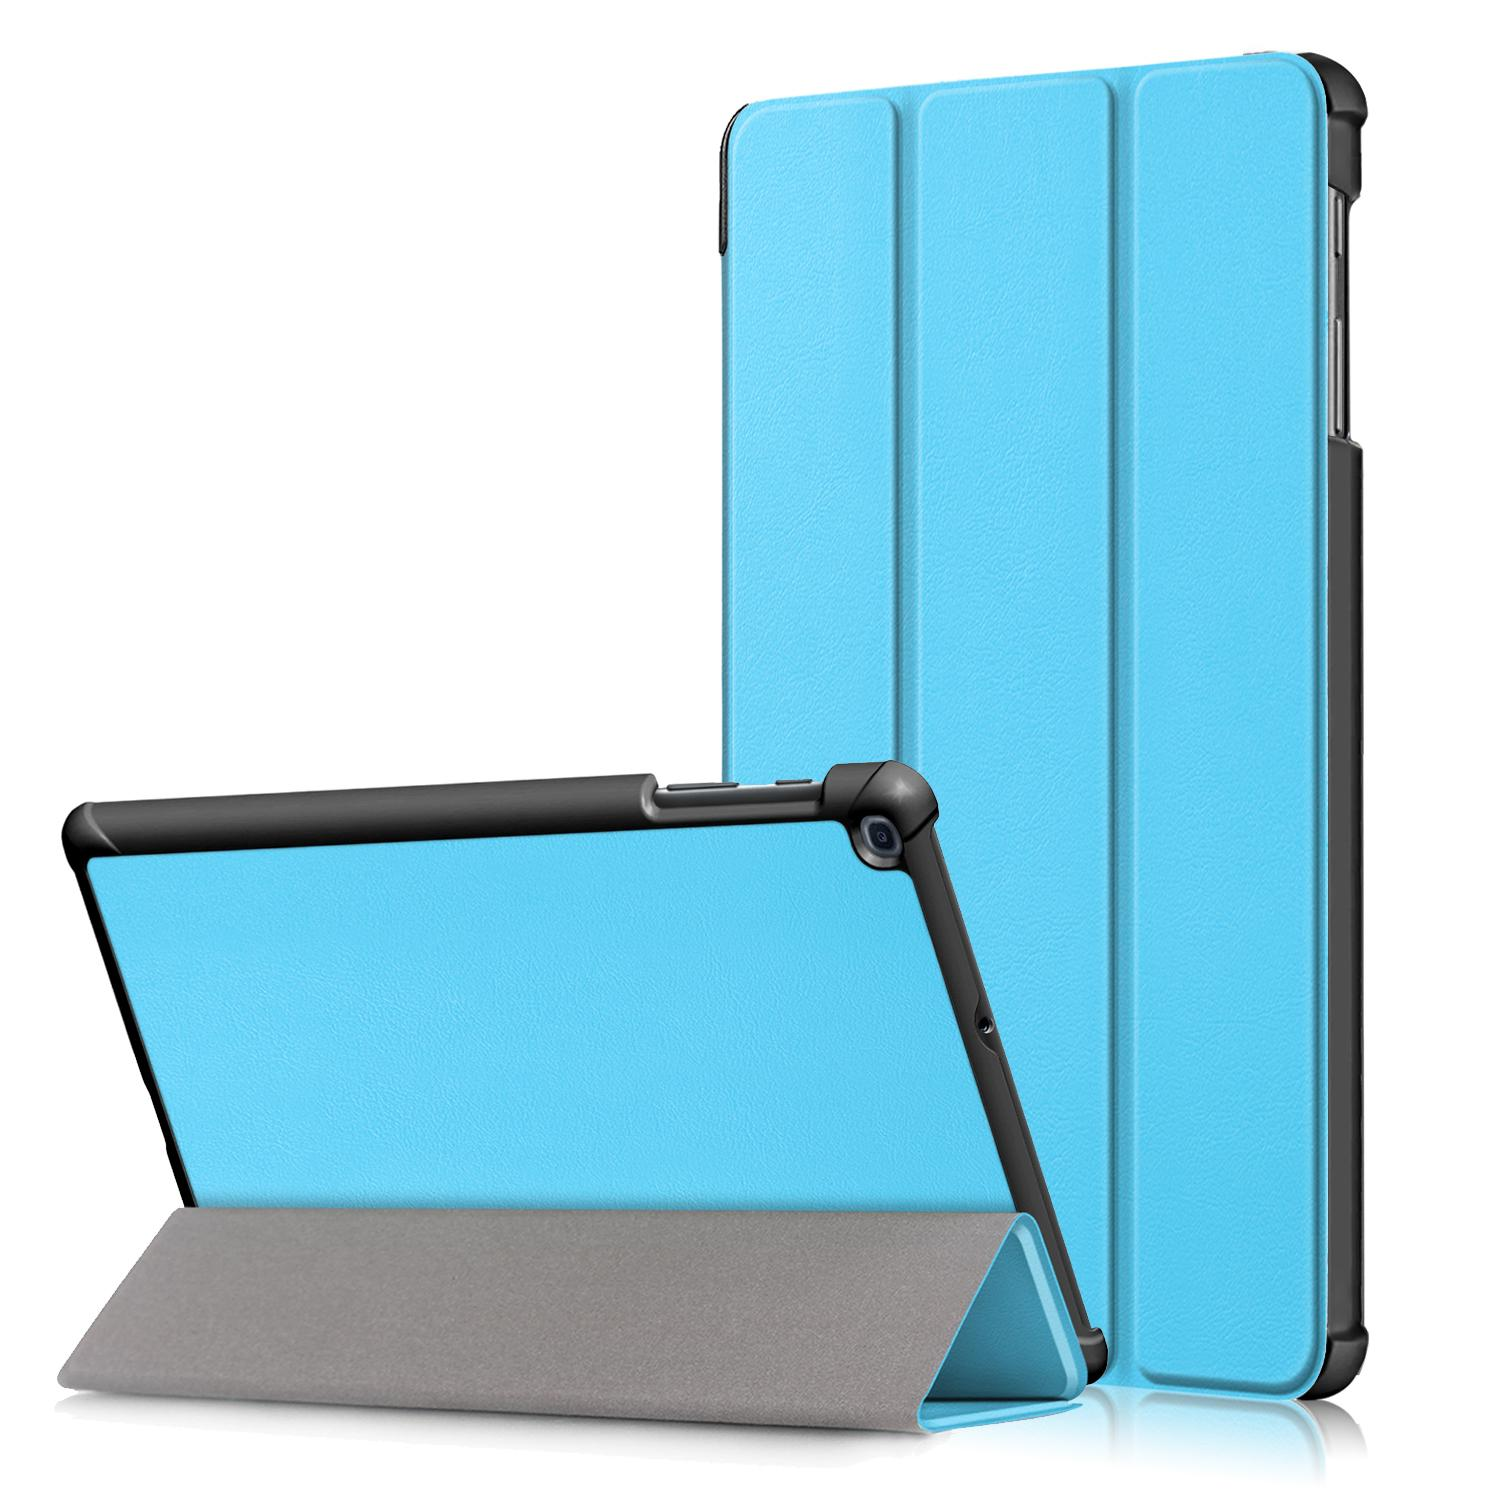 Smart leather Case for Samsung Galaxy Tab A 2019 SM-T515 T510 Funda Tablet Stand cover for Samsung Tab A 10.1 2019 case